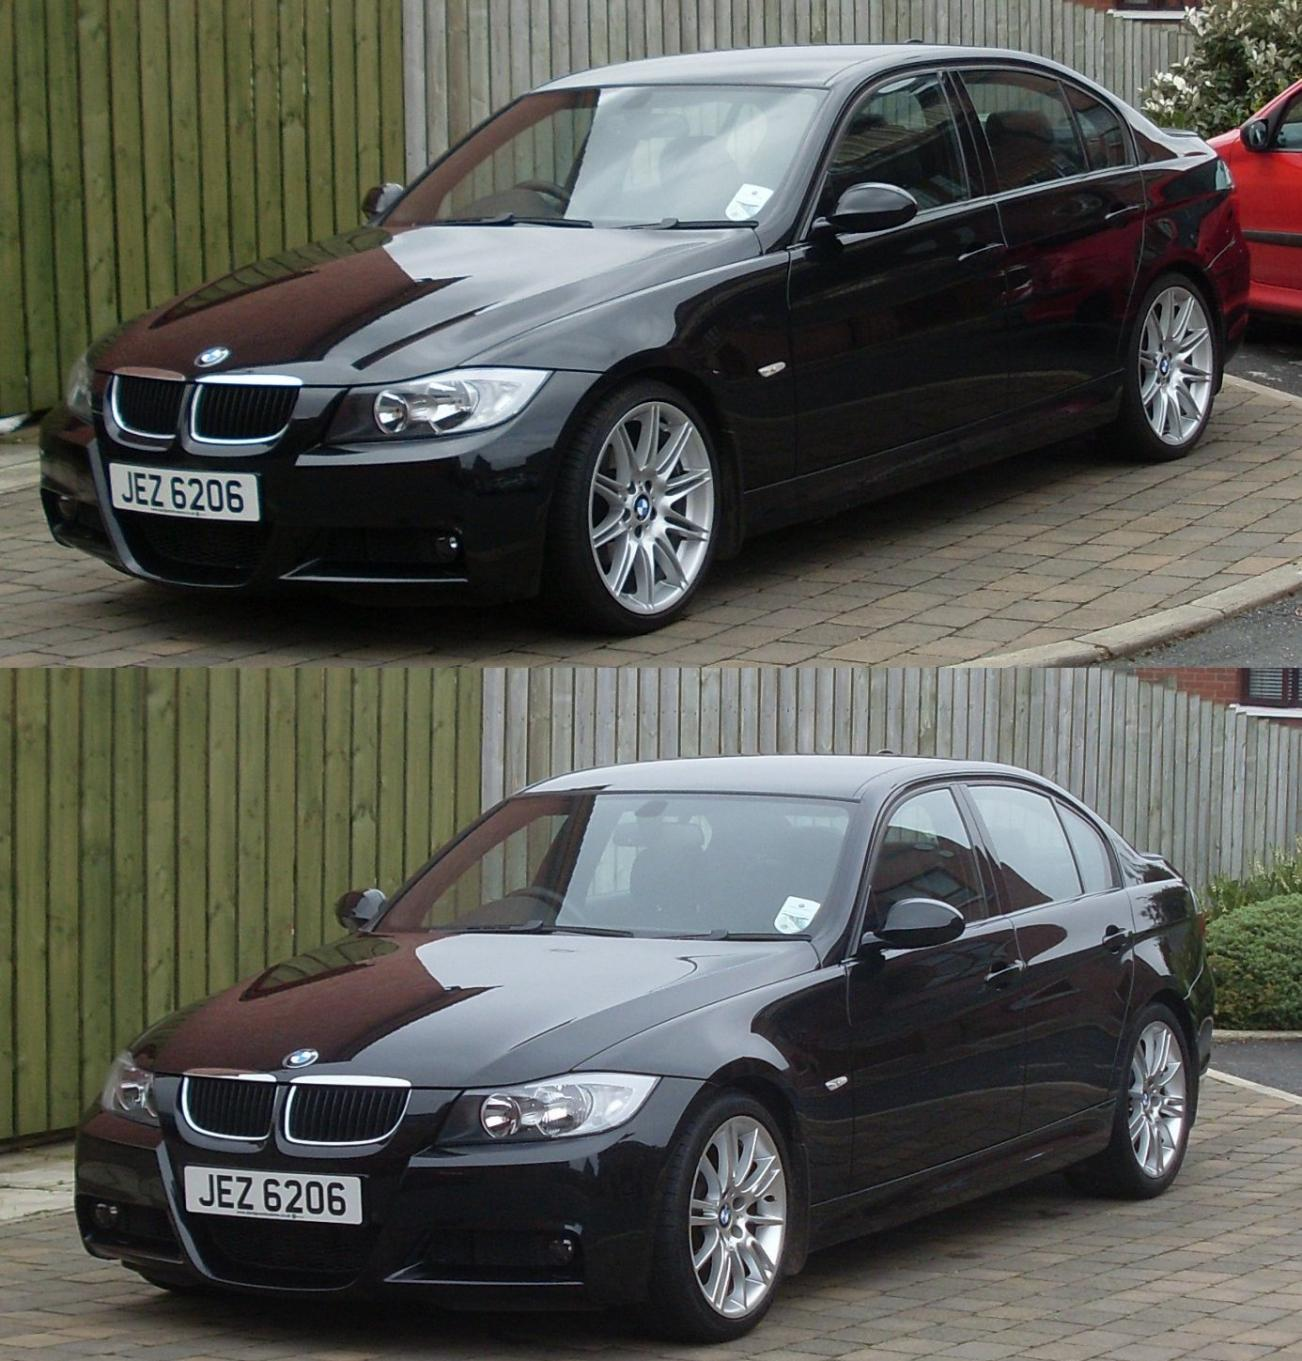 E90 19 Inch Style 225 M Sport Wheels Finally Fitted On Wrx Attached Images